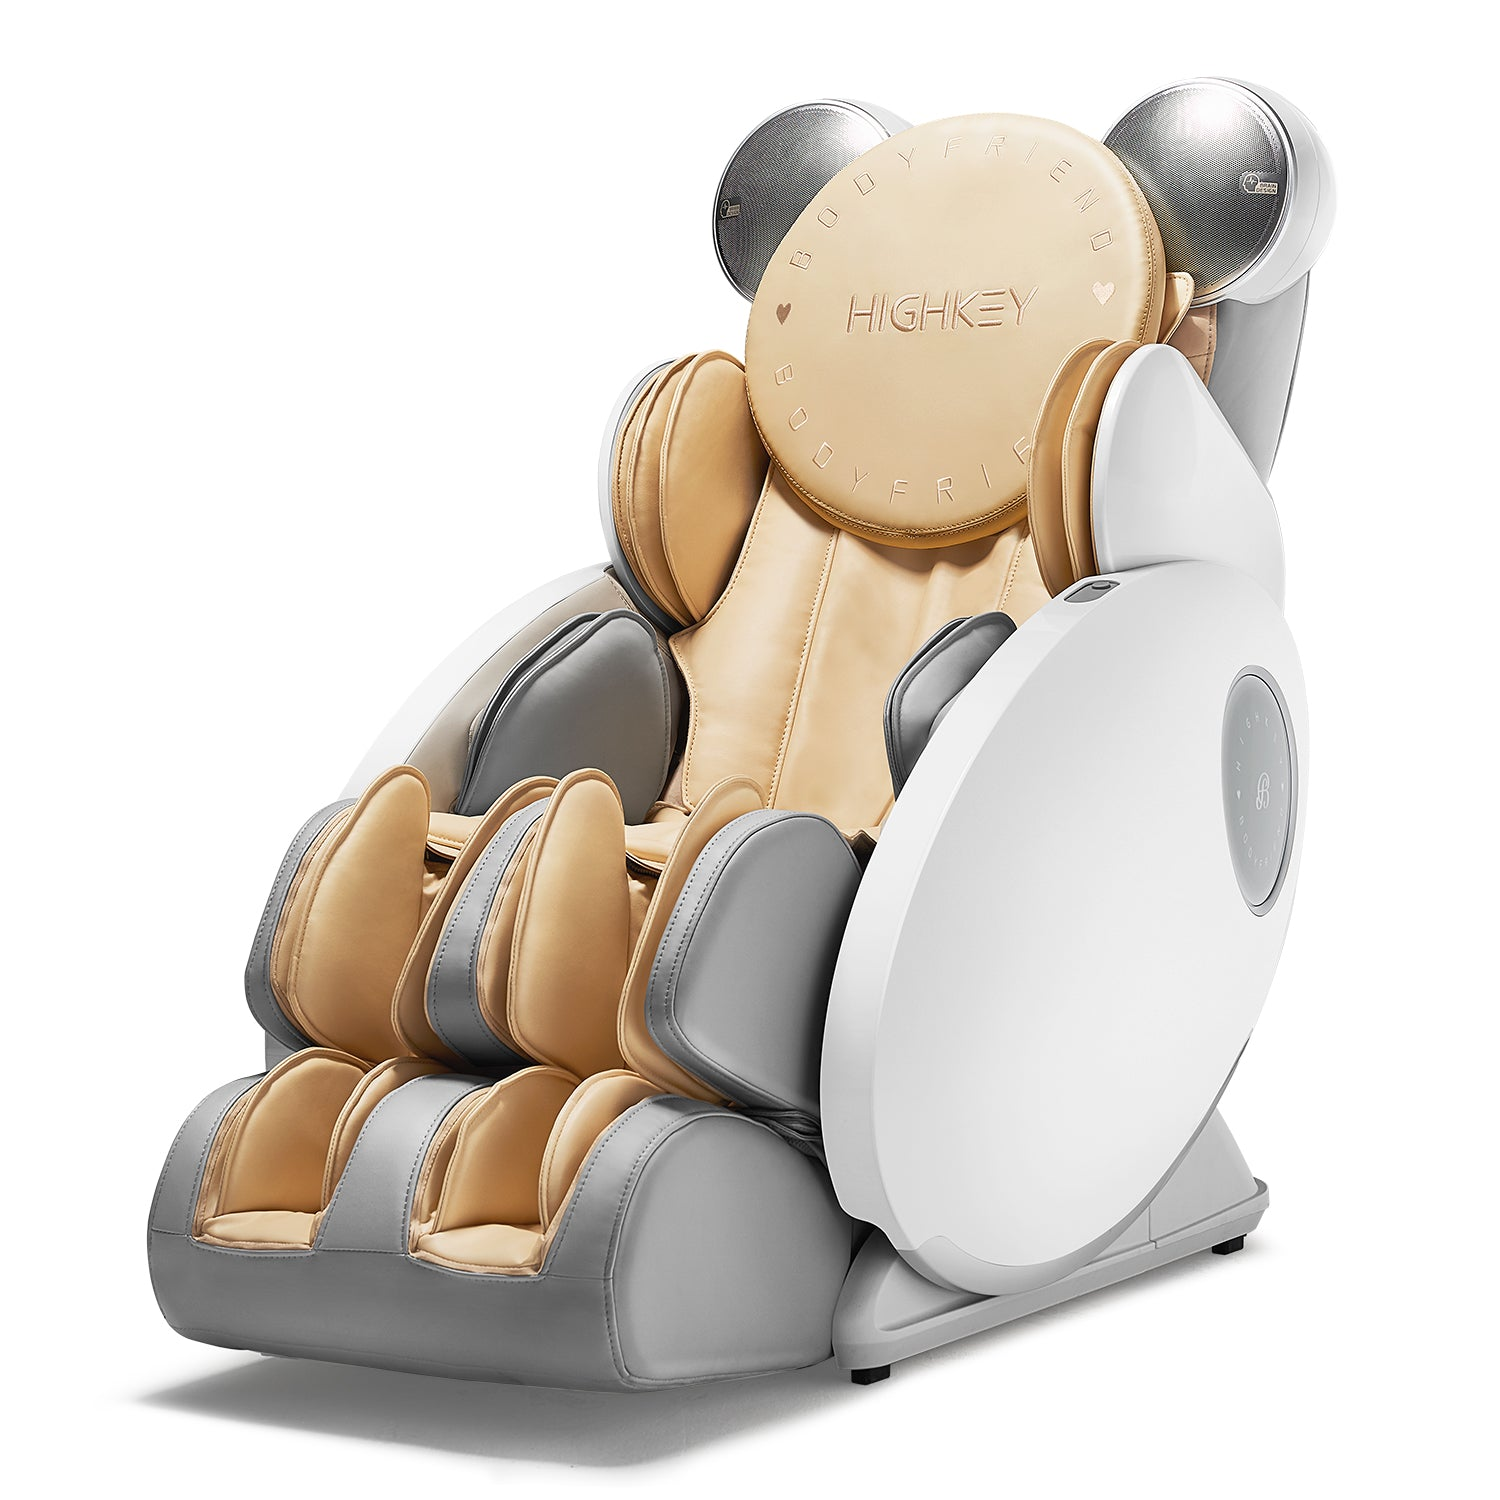 Highkey massage chair white color